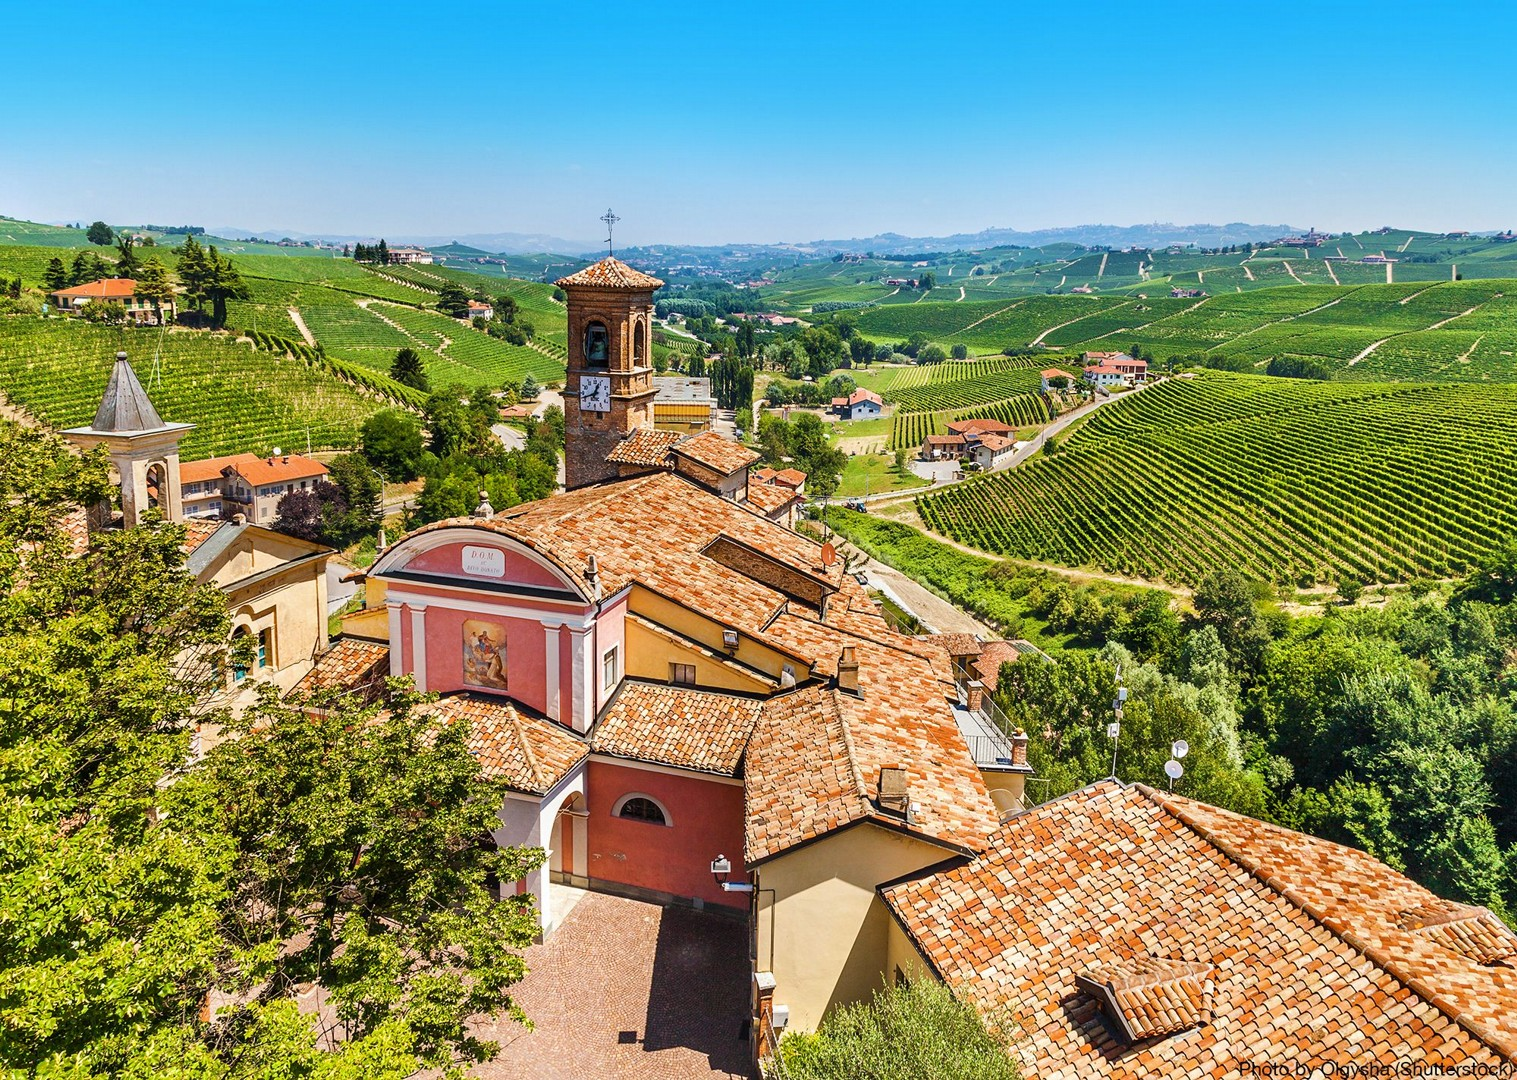 canale-barolo-alba-asti-regions-of-italy-tour-on-bikes-skedaddle.jpg - Italy - Piemonte - Vineyards and Views - Self-Guided Leisure Cycling Holiday - Leisure Cycling